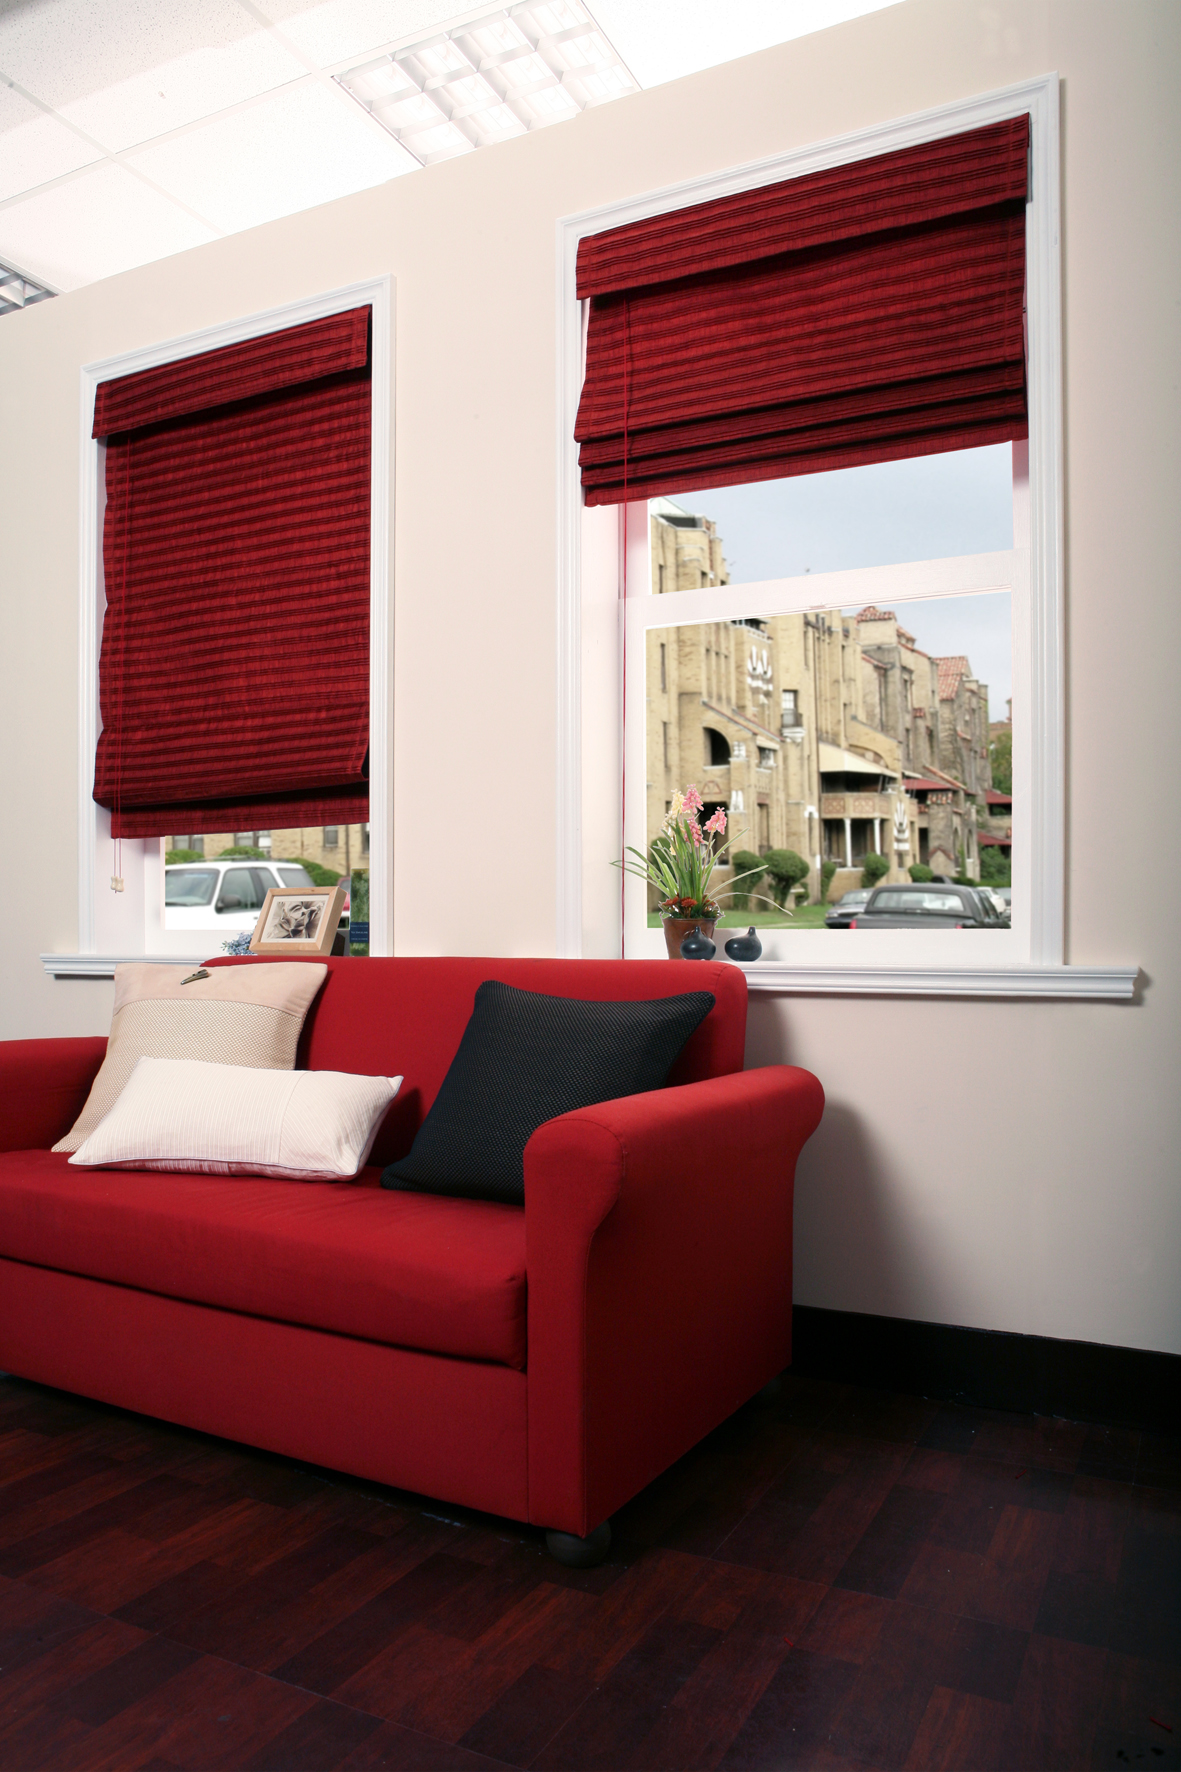 B2d Flatfall Roman Shades Group A